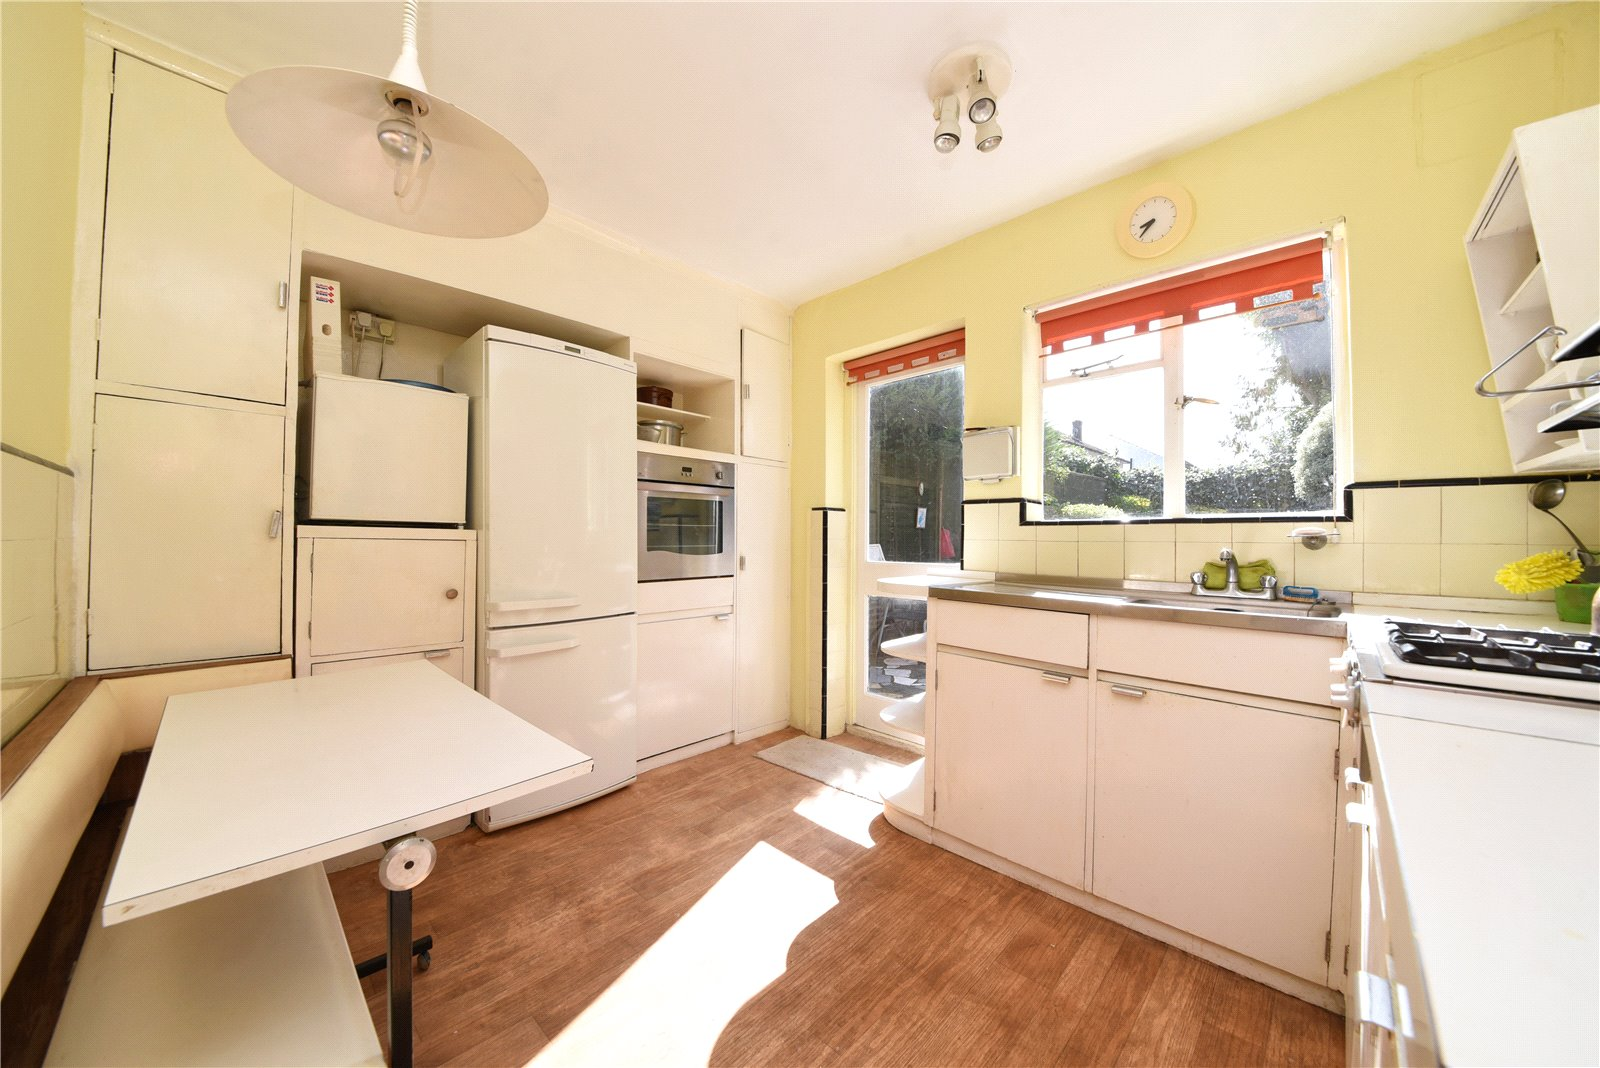 3 bed house for sale in West Finchley, N3 1PB 1